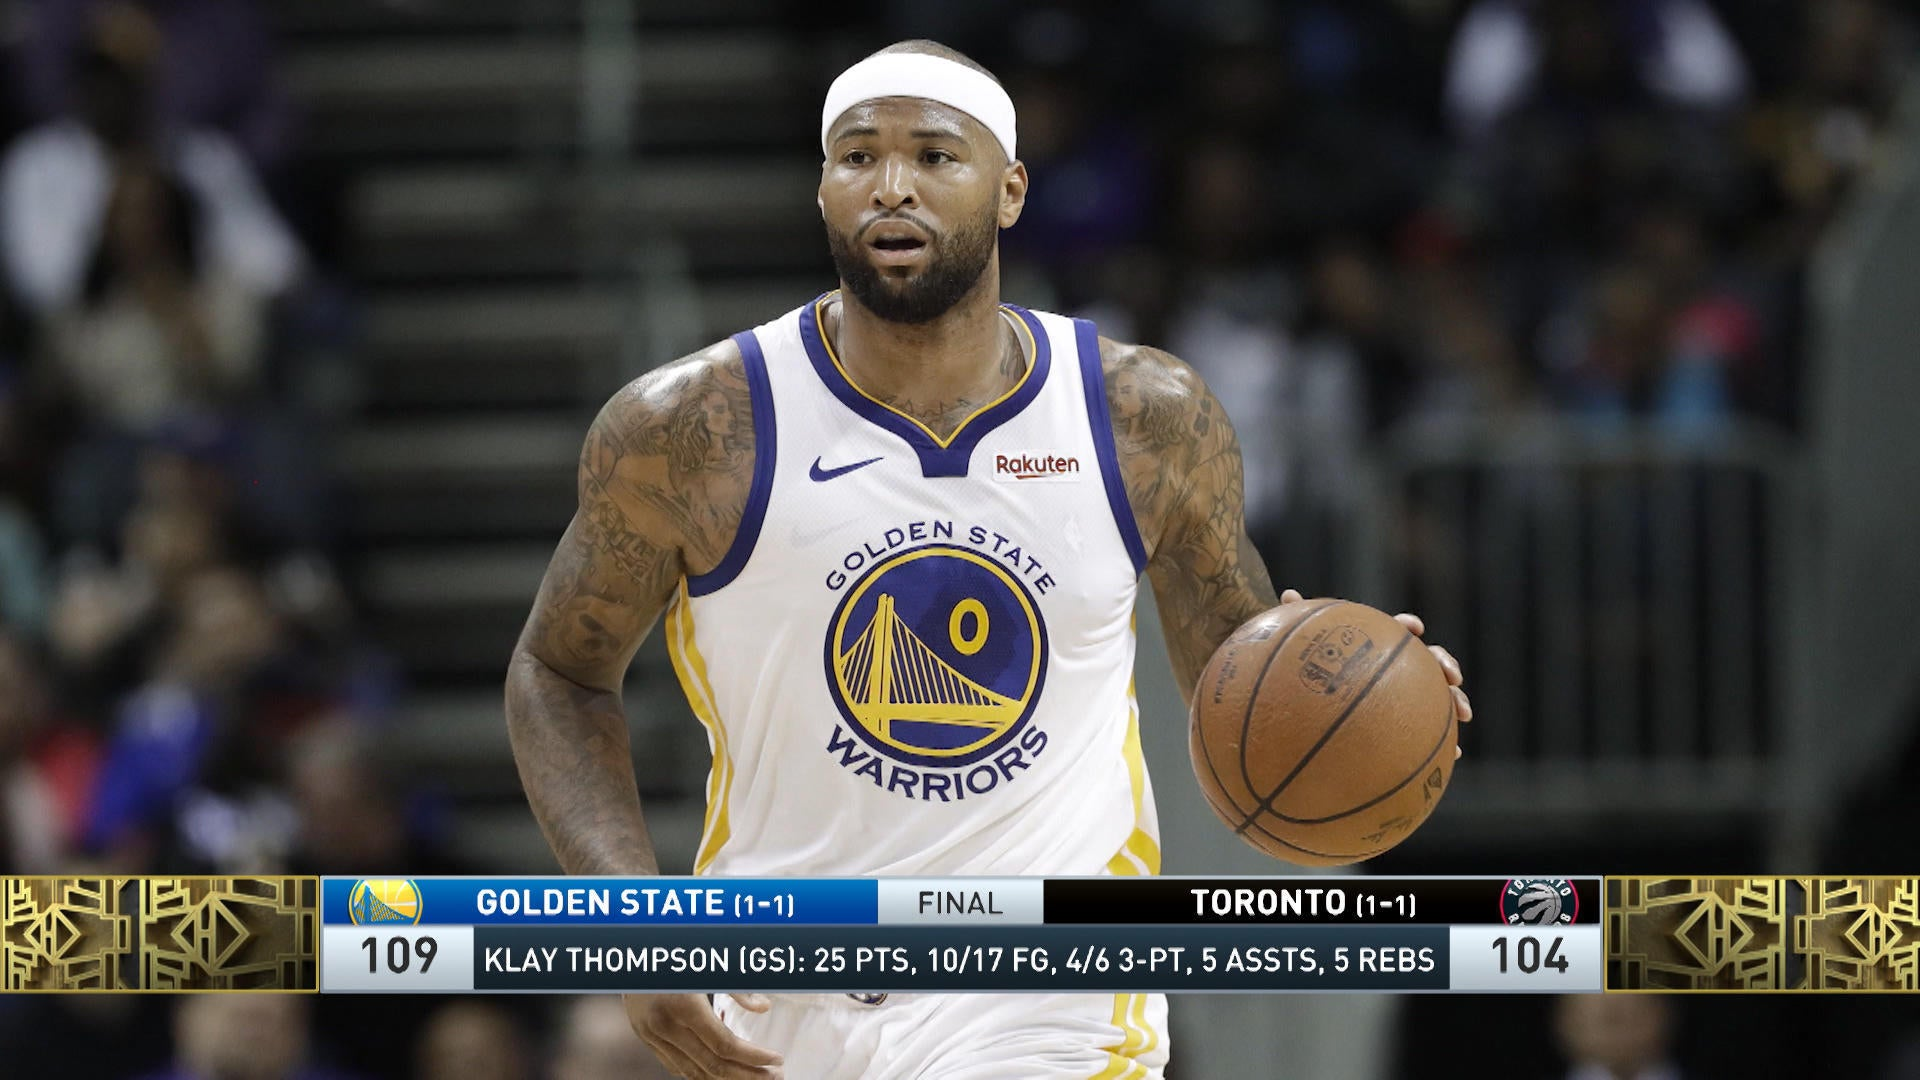 best website 8ba8b f91ce The Jim Rome Show: DeMarcus Cousins deserves this moment